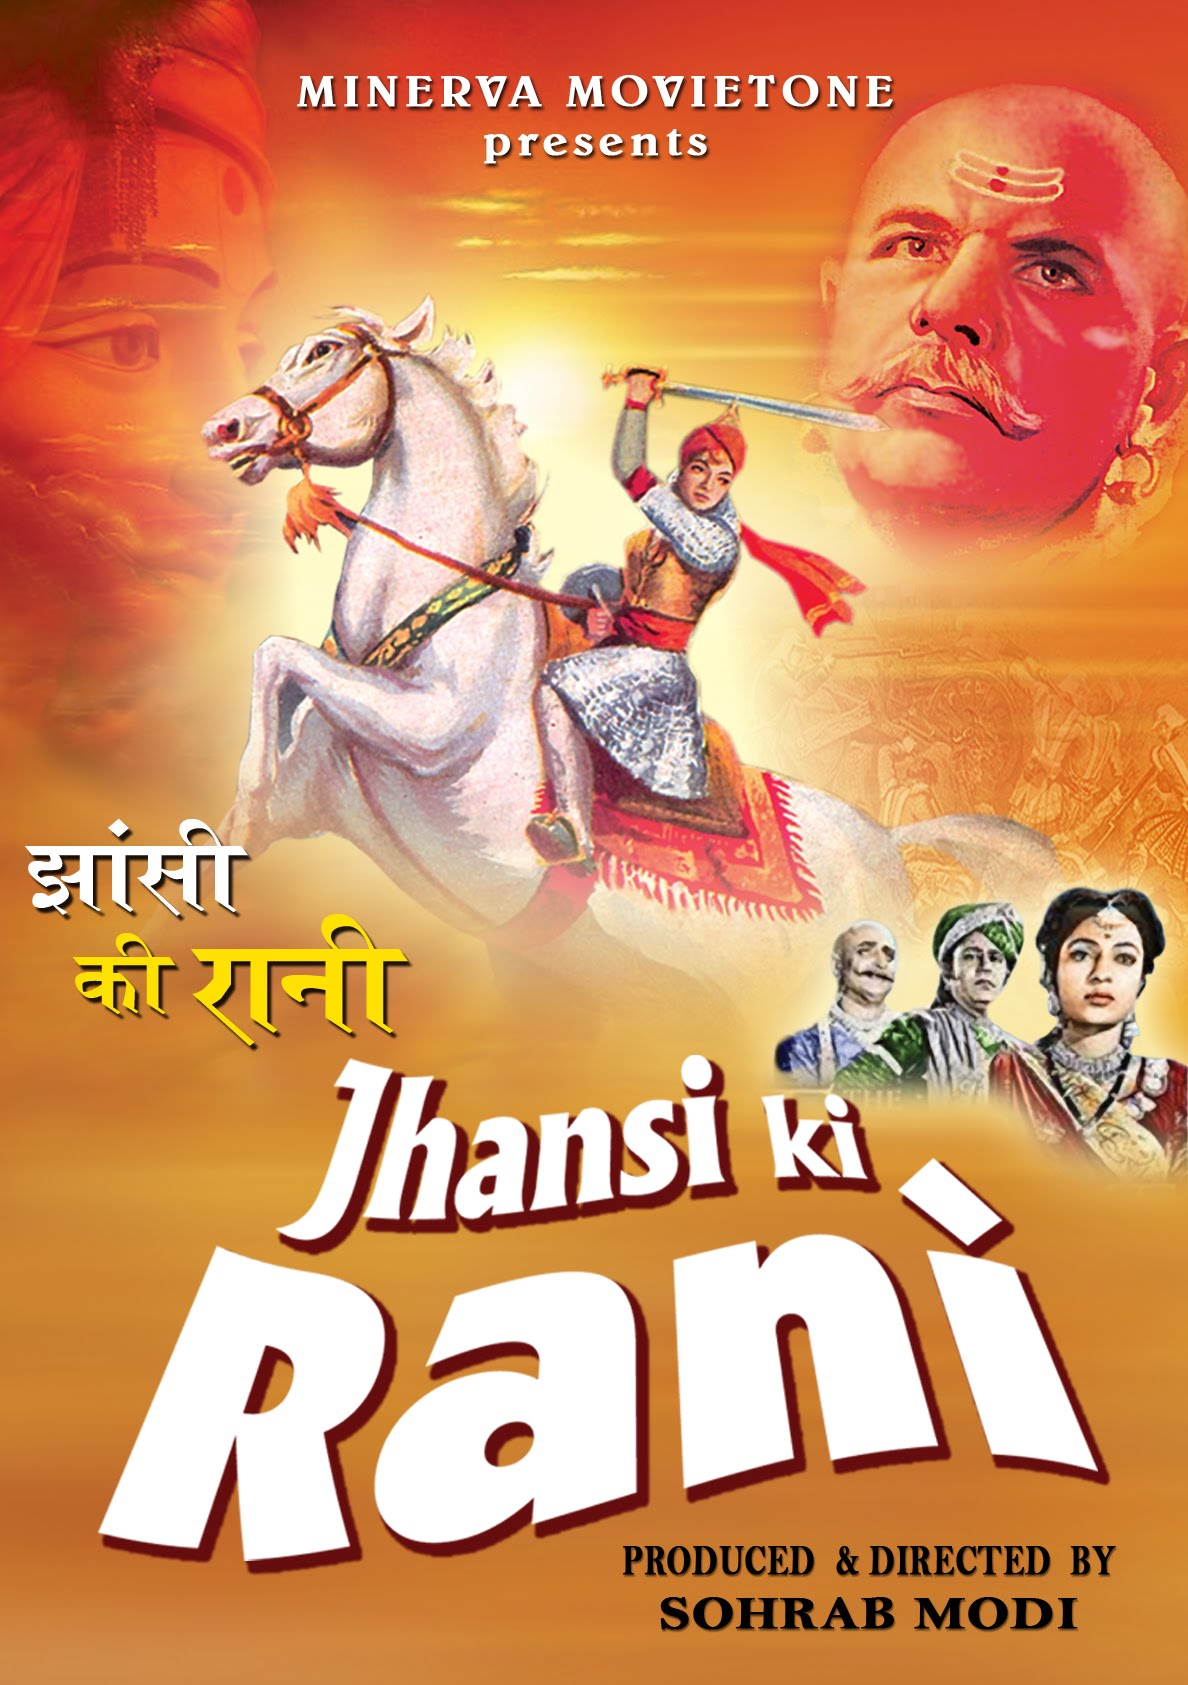 Jhansi Ki Rani 1953 Movie Full HD Poster